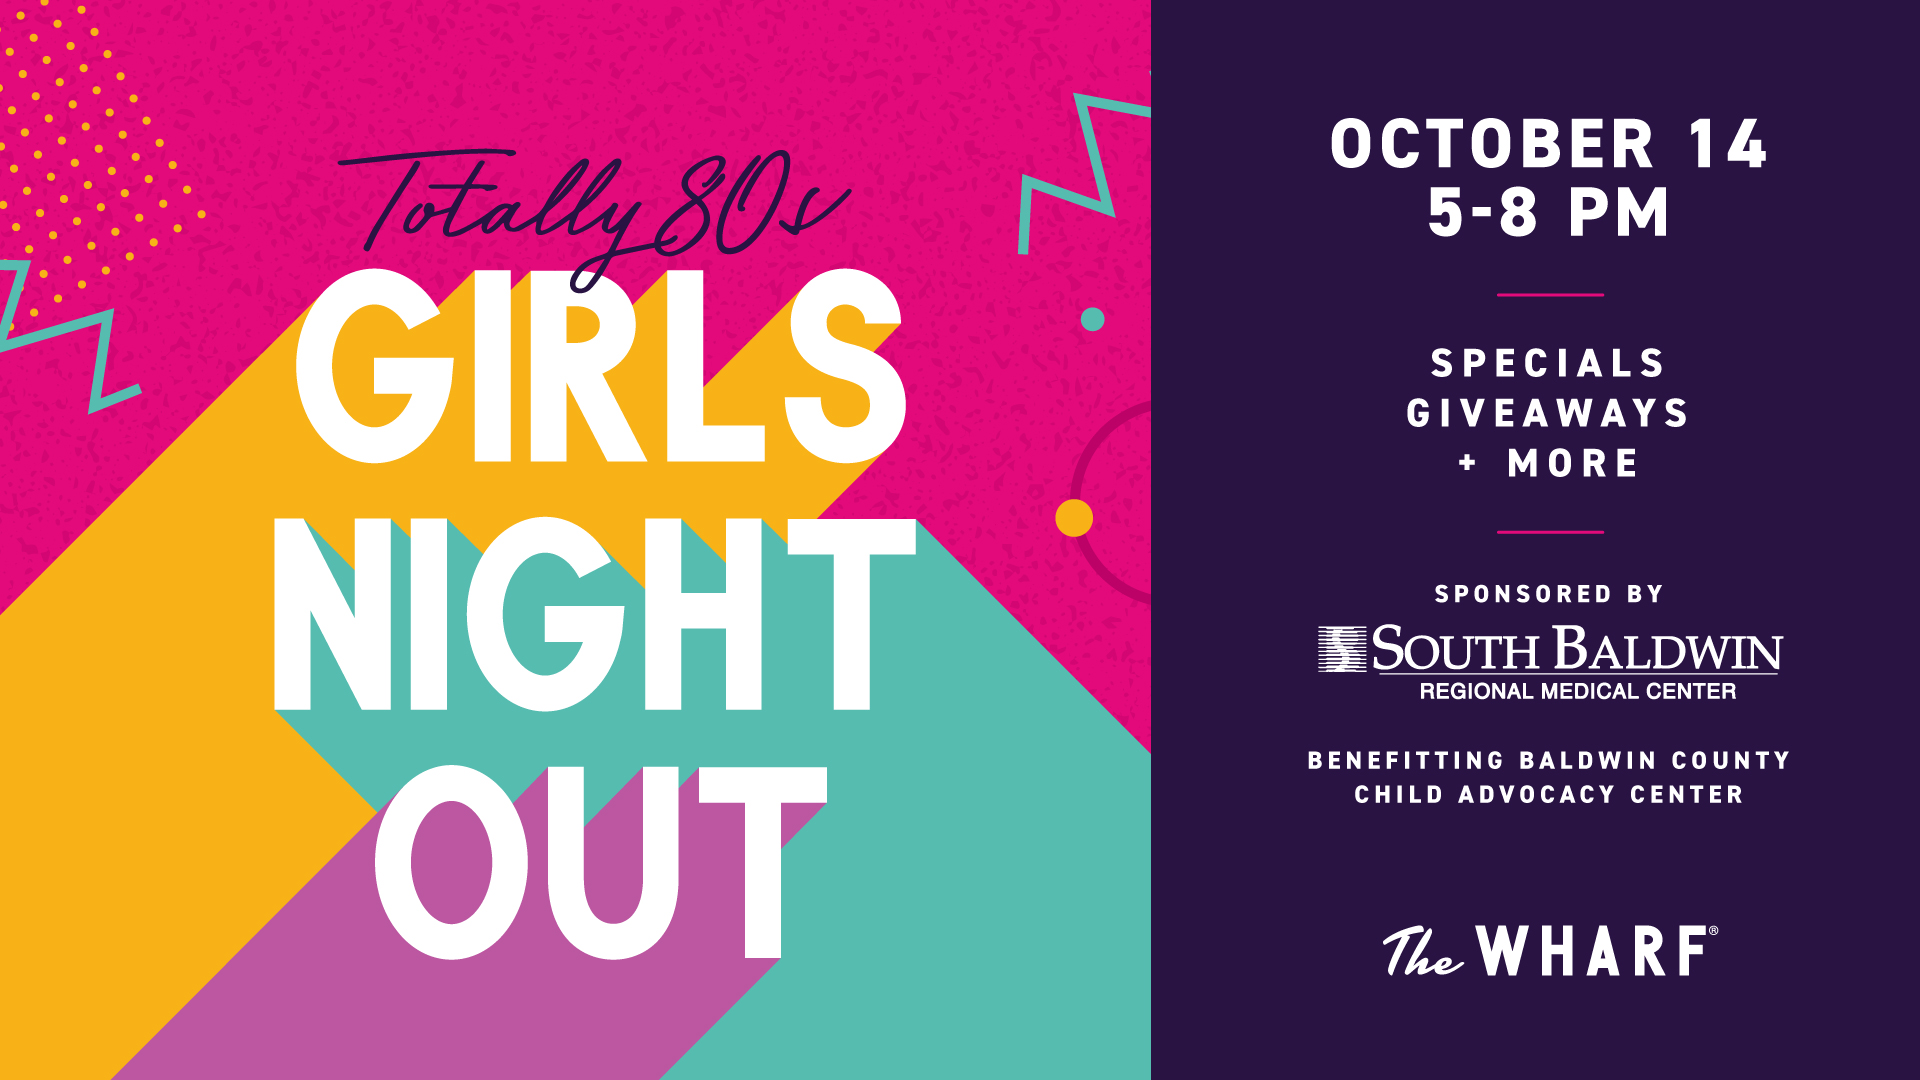 Totally 80's Girls' Night Out at The Wharf